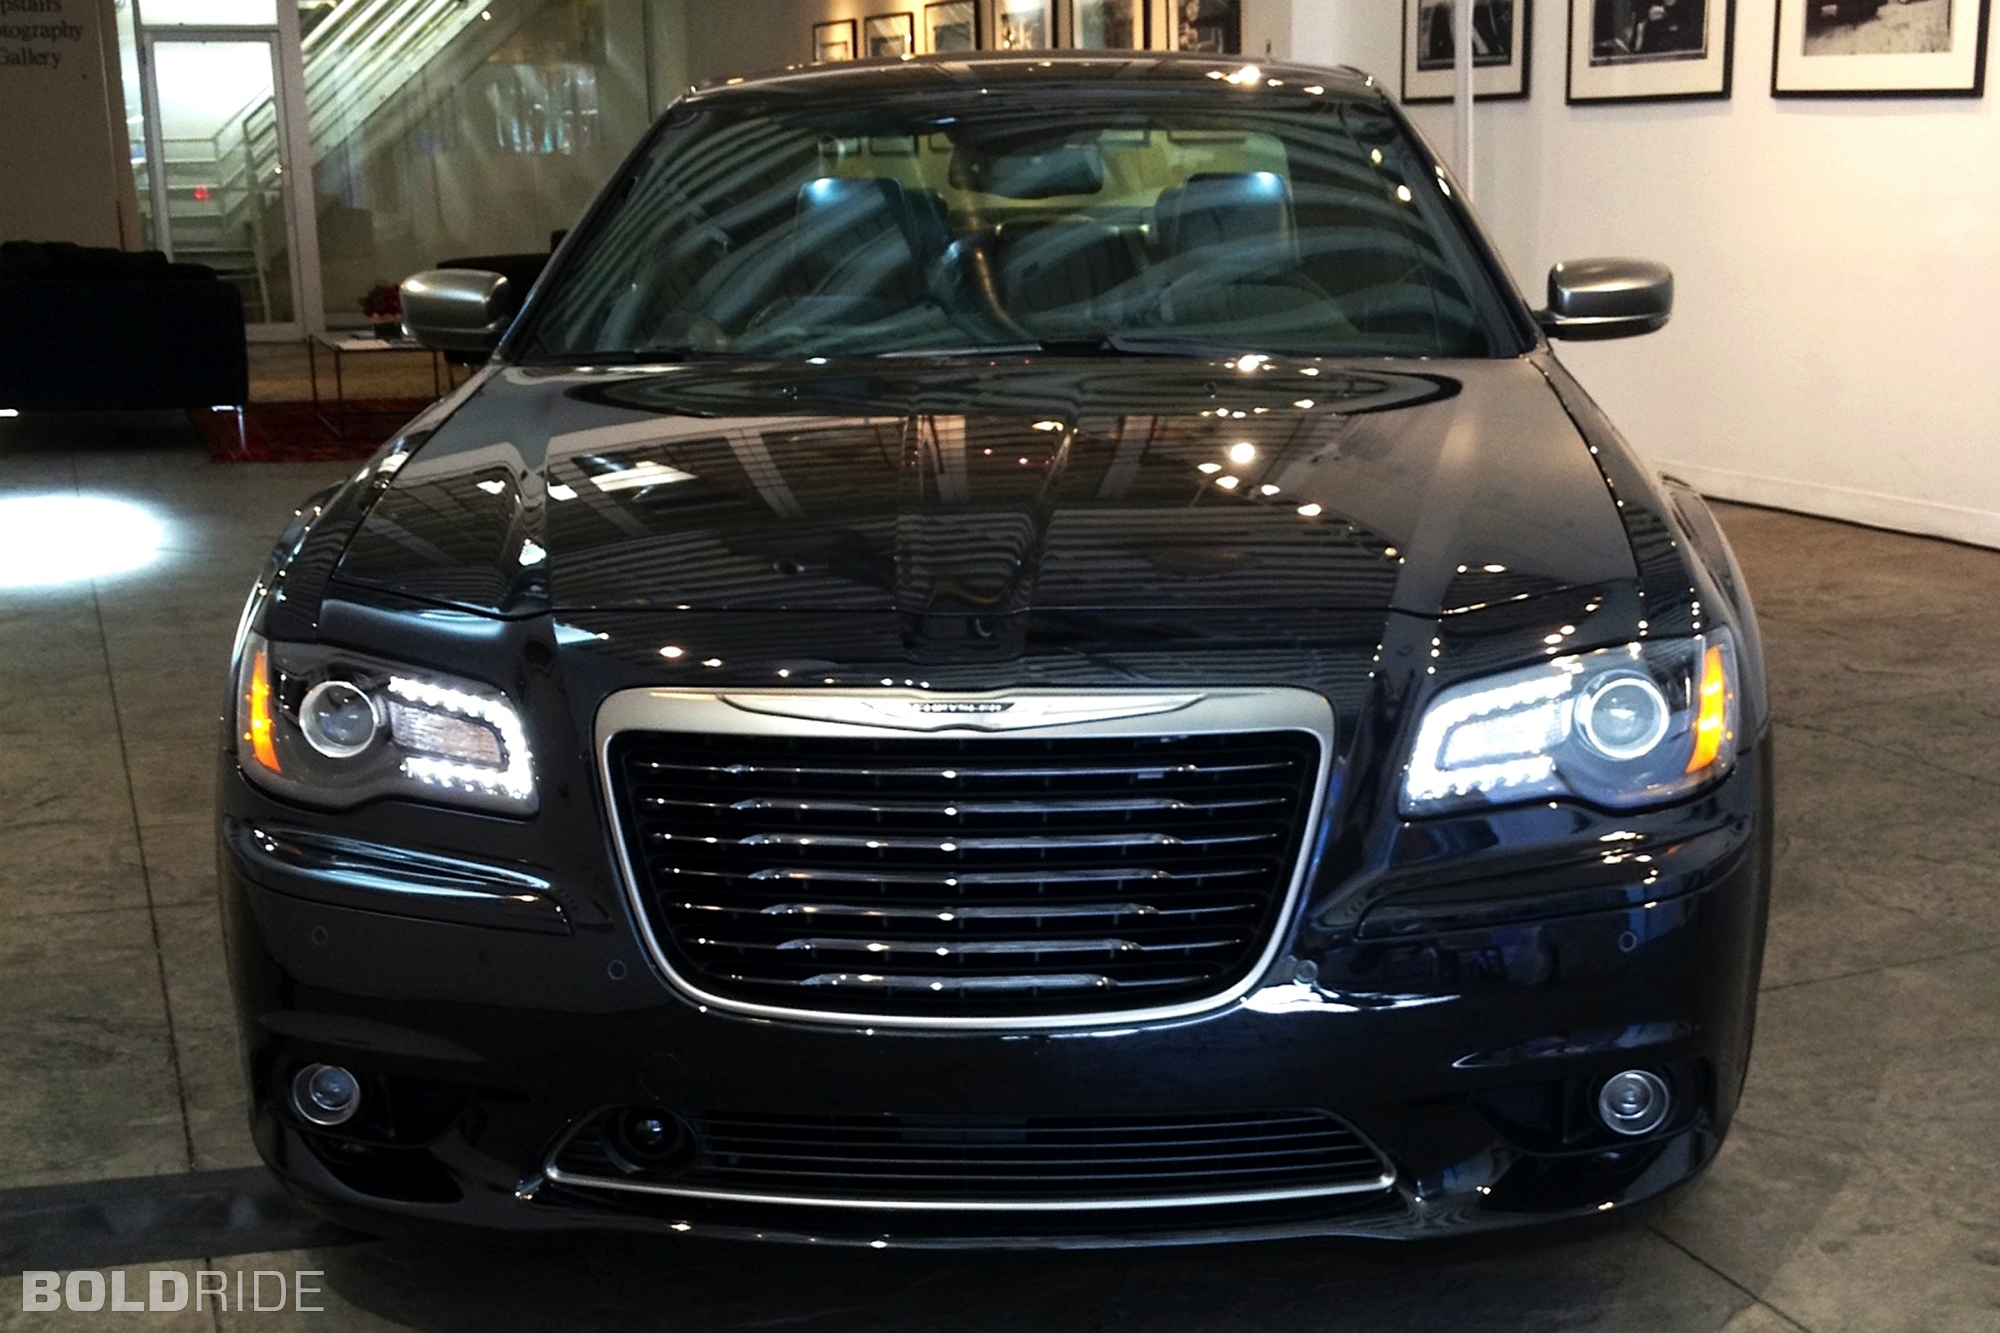 2013 Chrysler 300C John Varvatos Edition 1280 x 1080